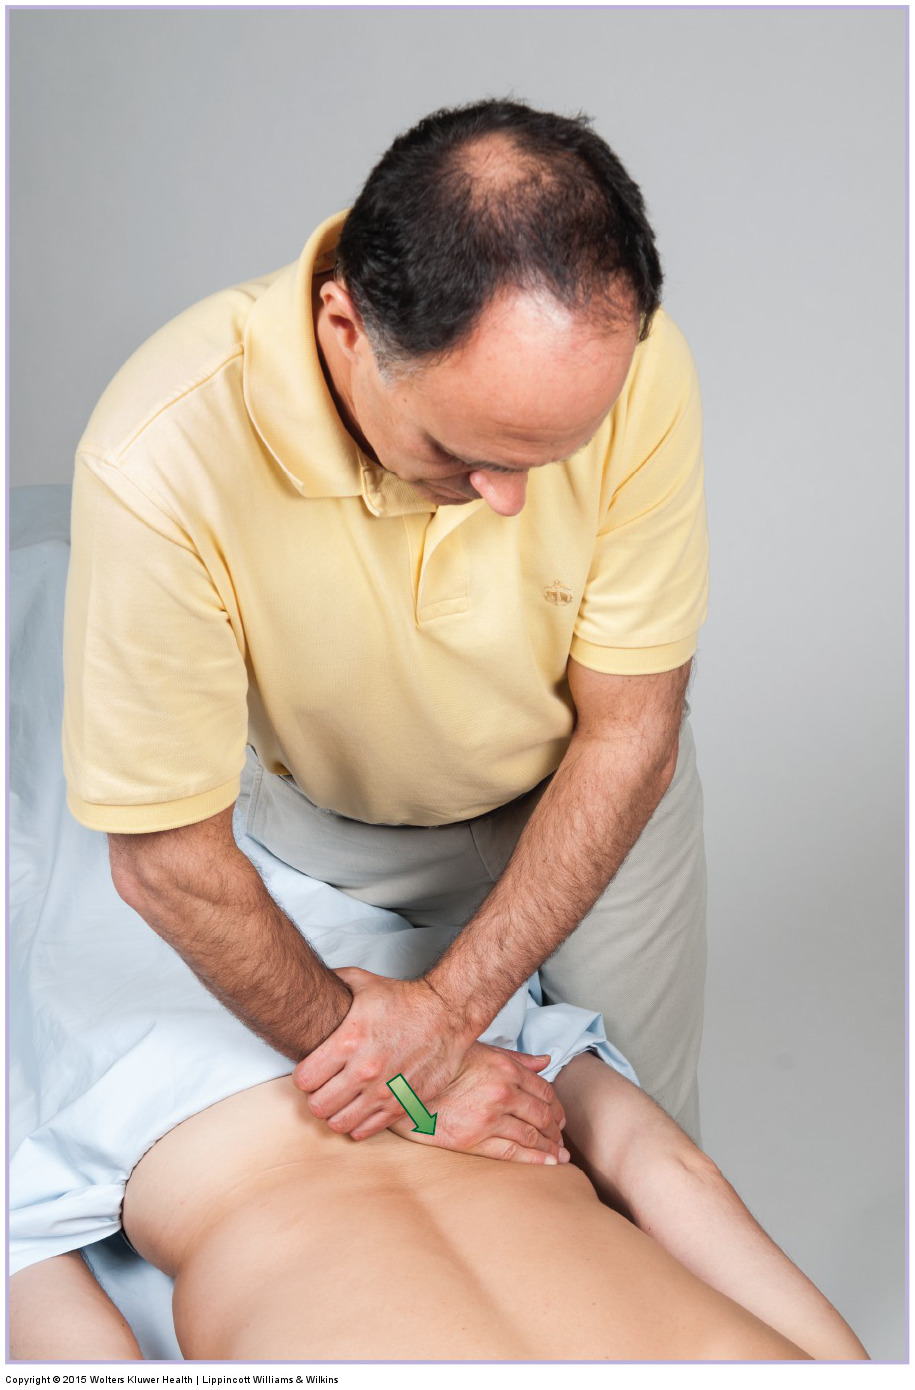 Motion palpation assessment (and joint mobilization treatment) for the left sacroiliac joint. Permission: Joseph E. Muscolino. Manual Therapy for the Low Back and Pelvis (2015).